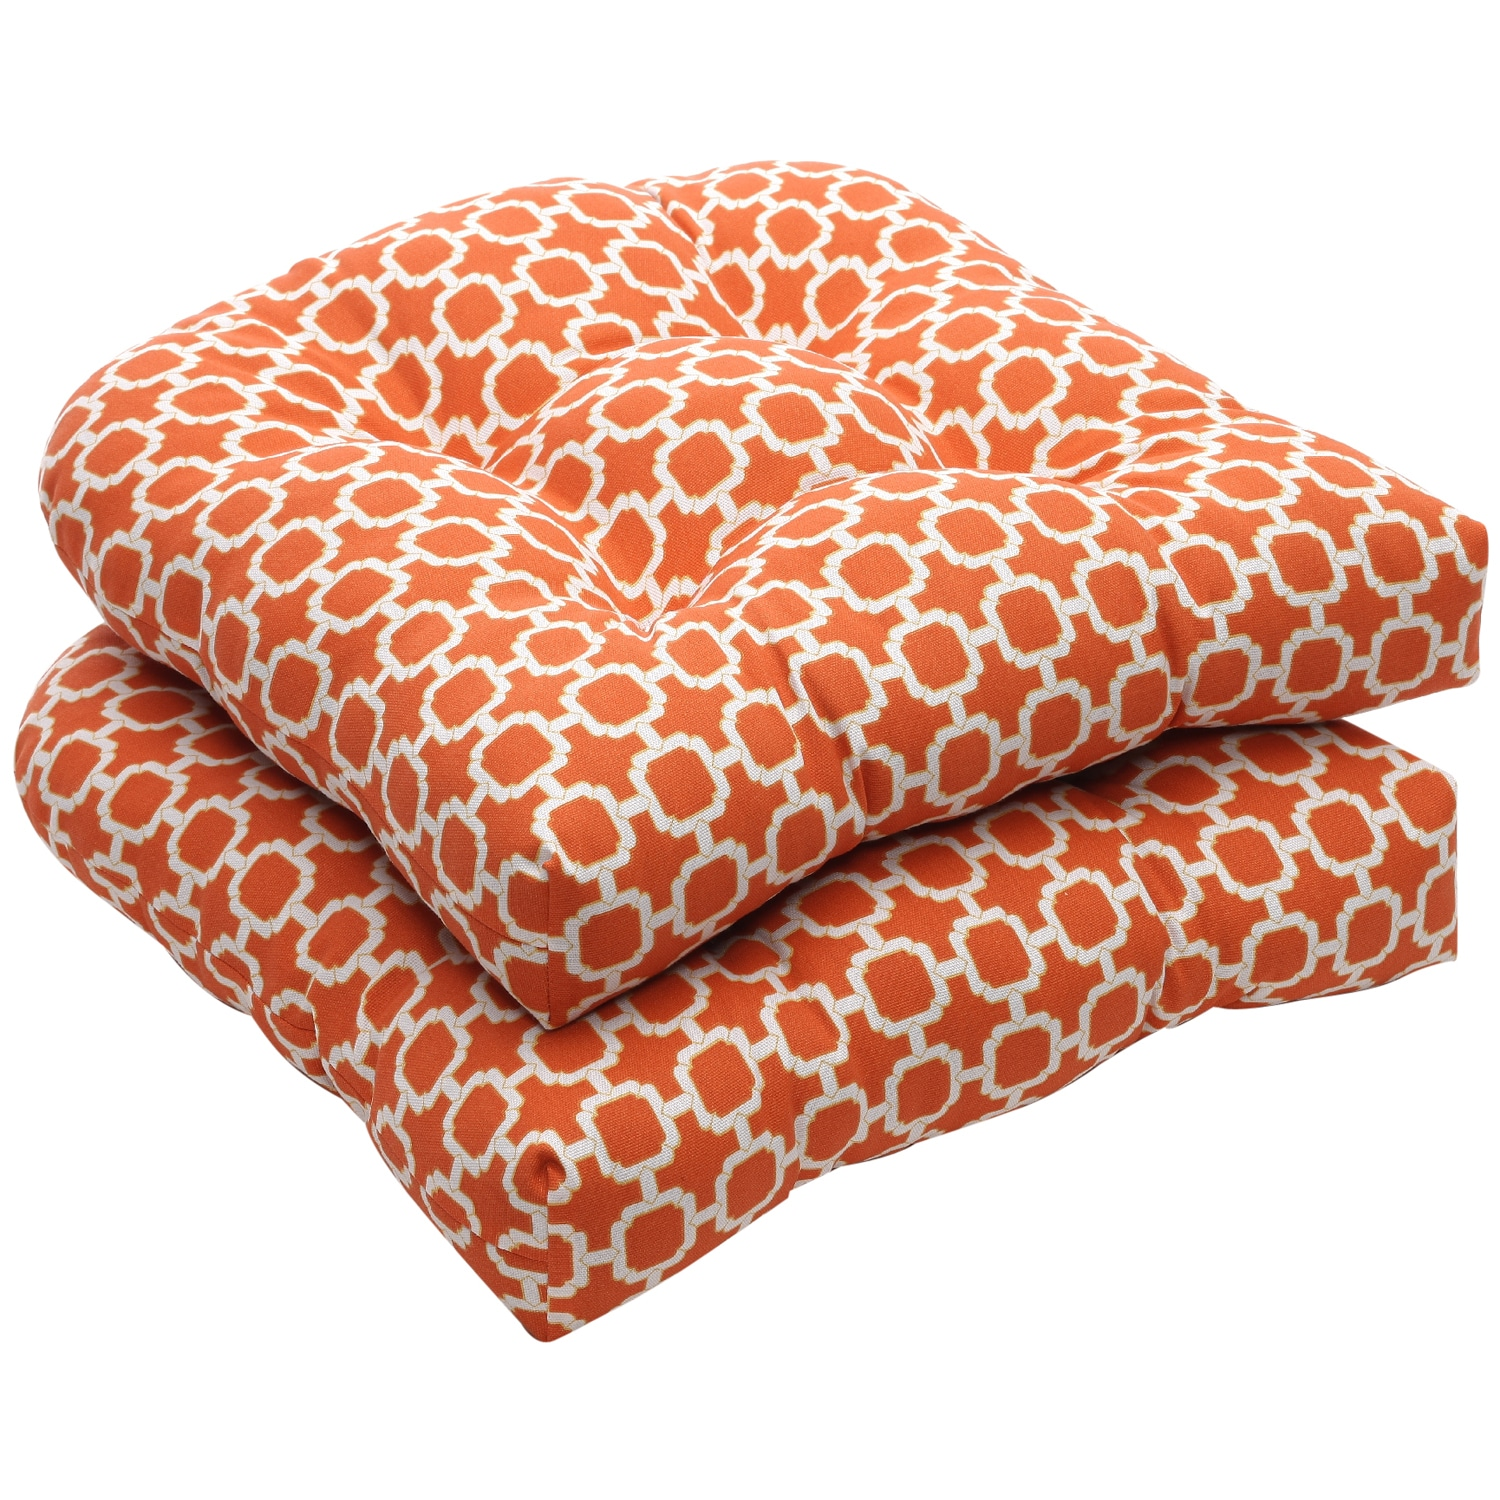 Pillow Perfect Outdoor Geometric Orange/ White Wicker Seat Cushions (Set of 2) - Thumbnail 0